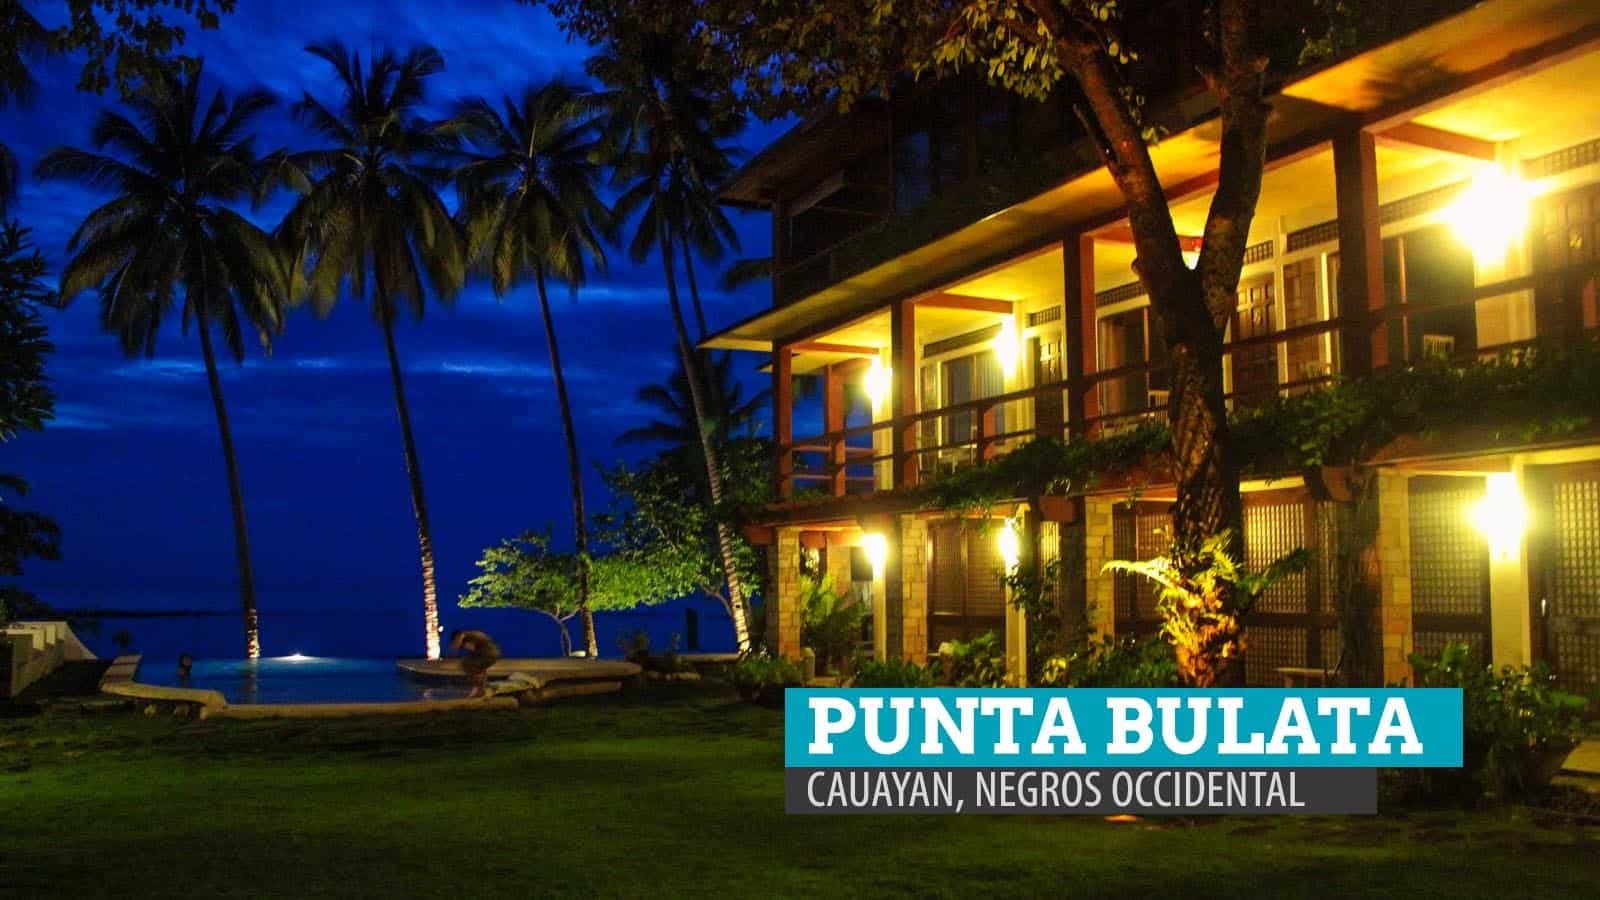 PUNTA BULATA RESORT in Cauayan, Negros Occidental (Splurge Option)